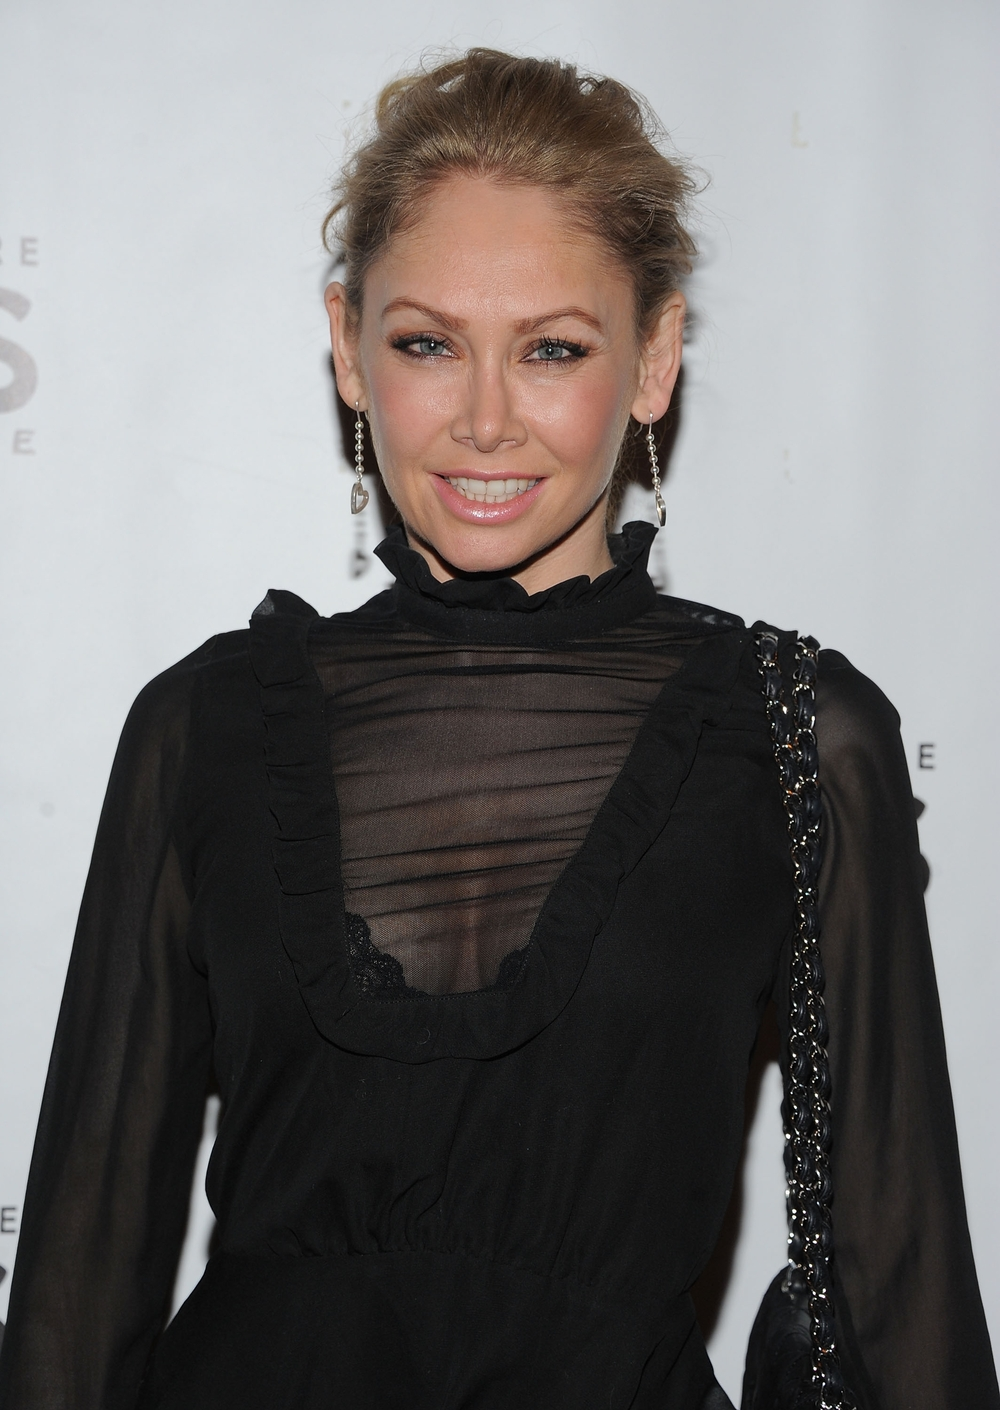 DWTS Pro Kym Johnson Reveals Where She'll Be When the World Ends in 2012